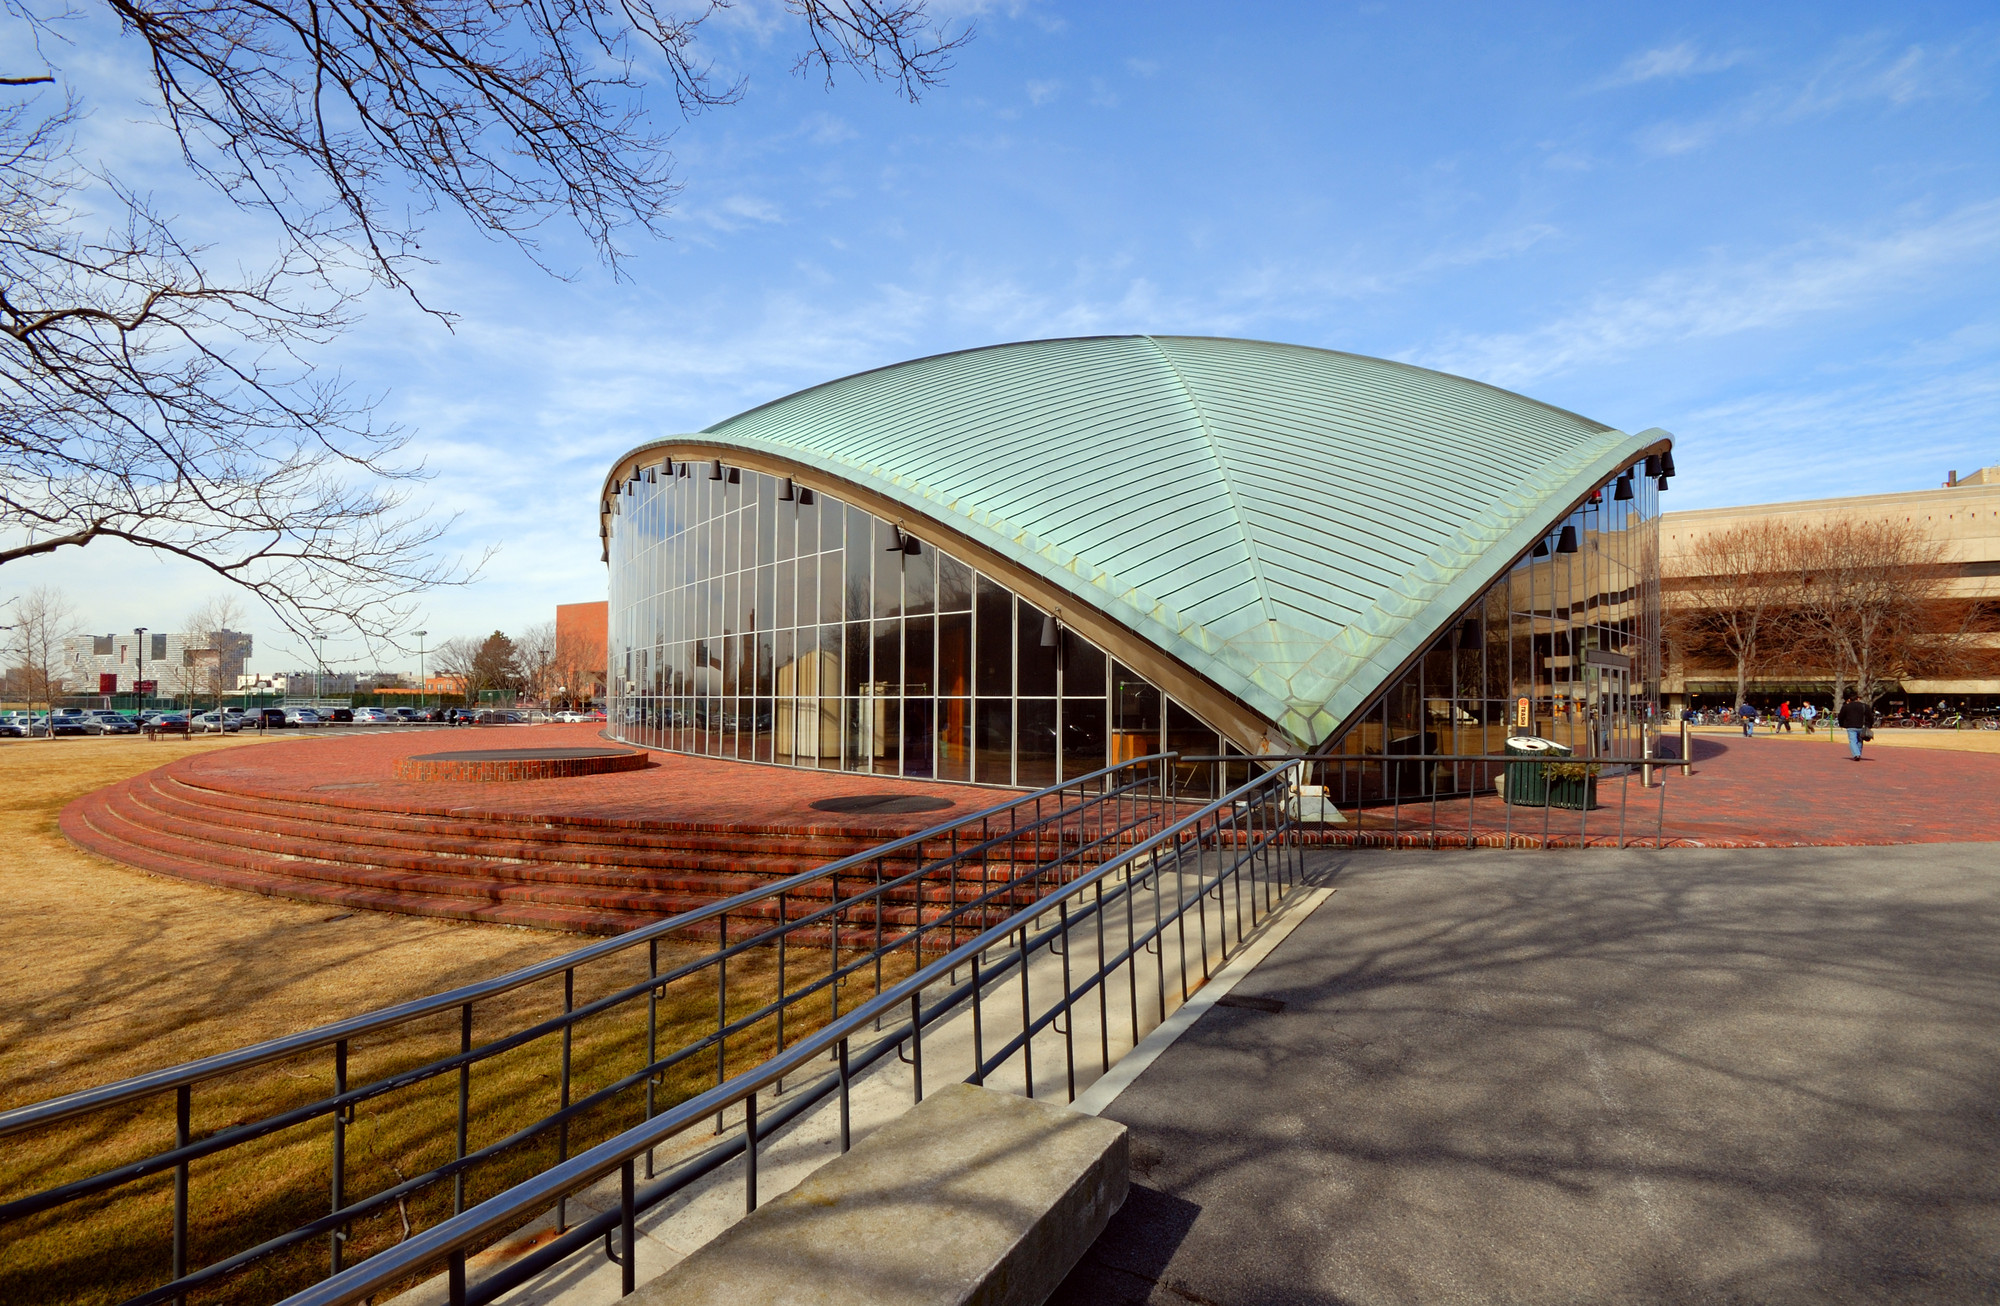 AD Classics: Kresge Auditorium / Eero Saarinen and Associates, Kresge Auditorium at MIT, Cambridge, Massachusetts © Jorge Salcedo / Shutterstock